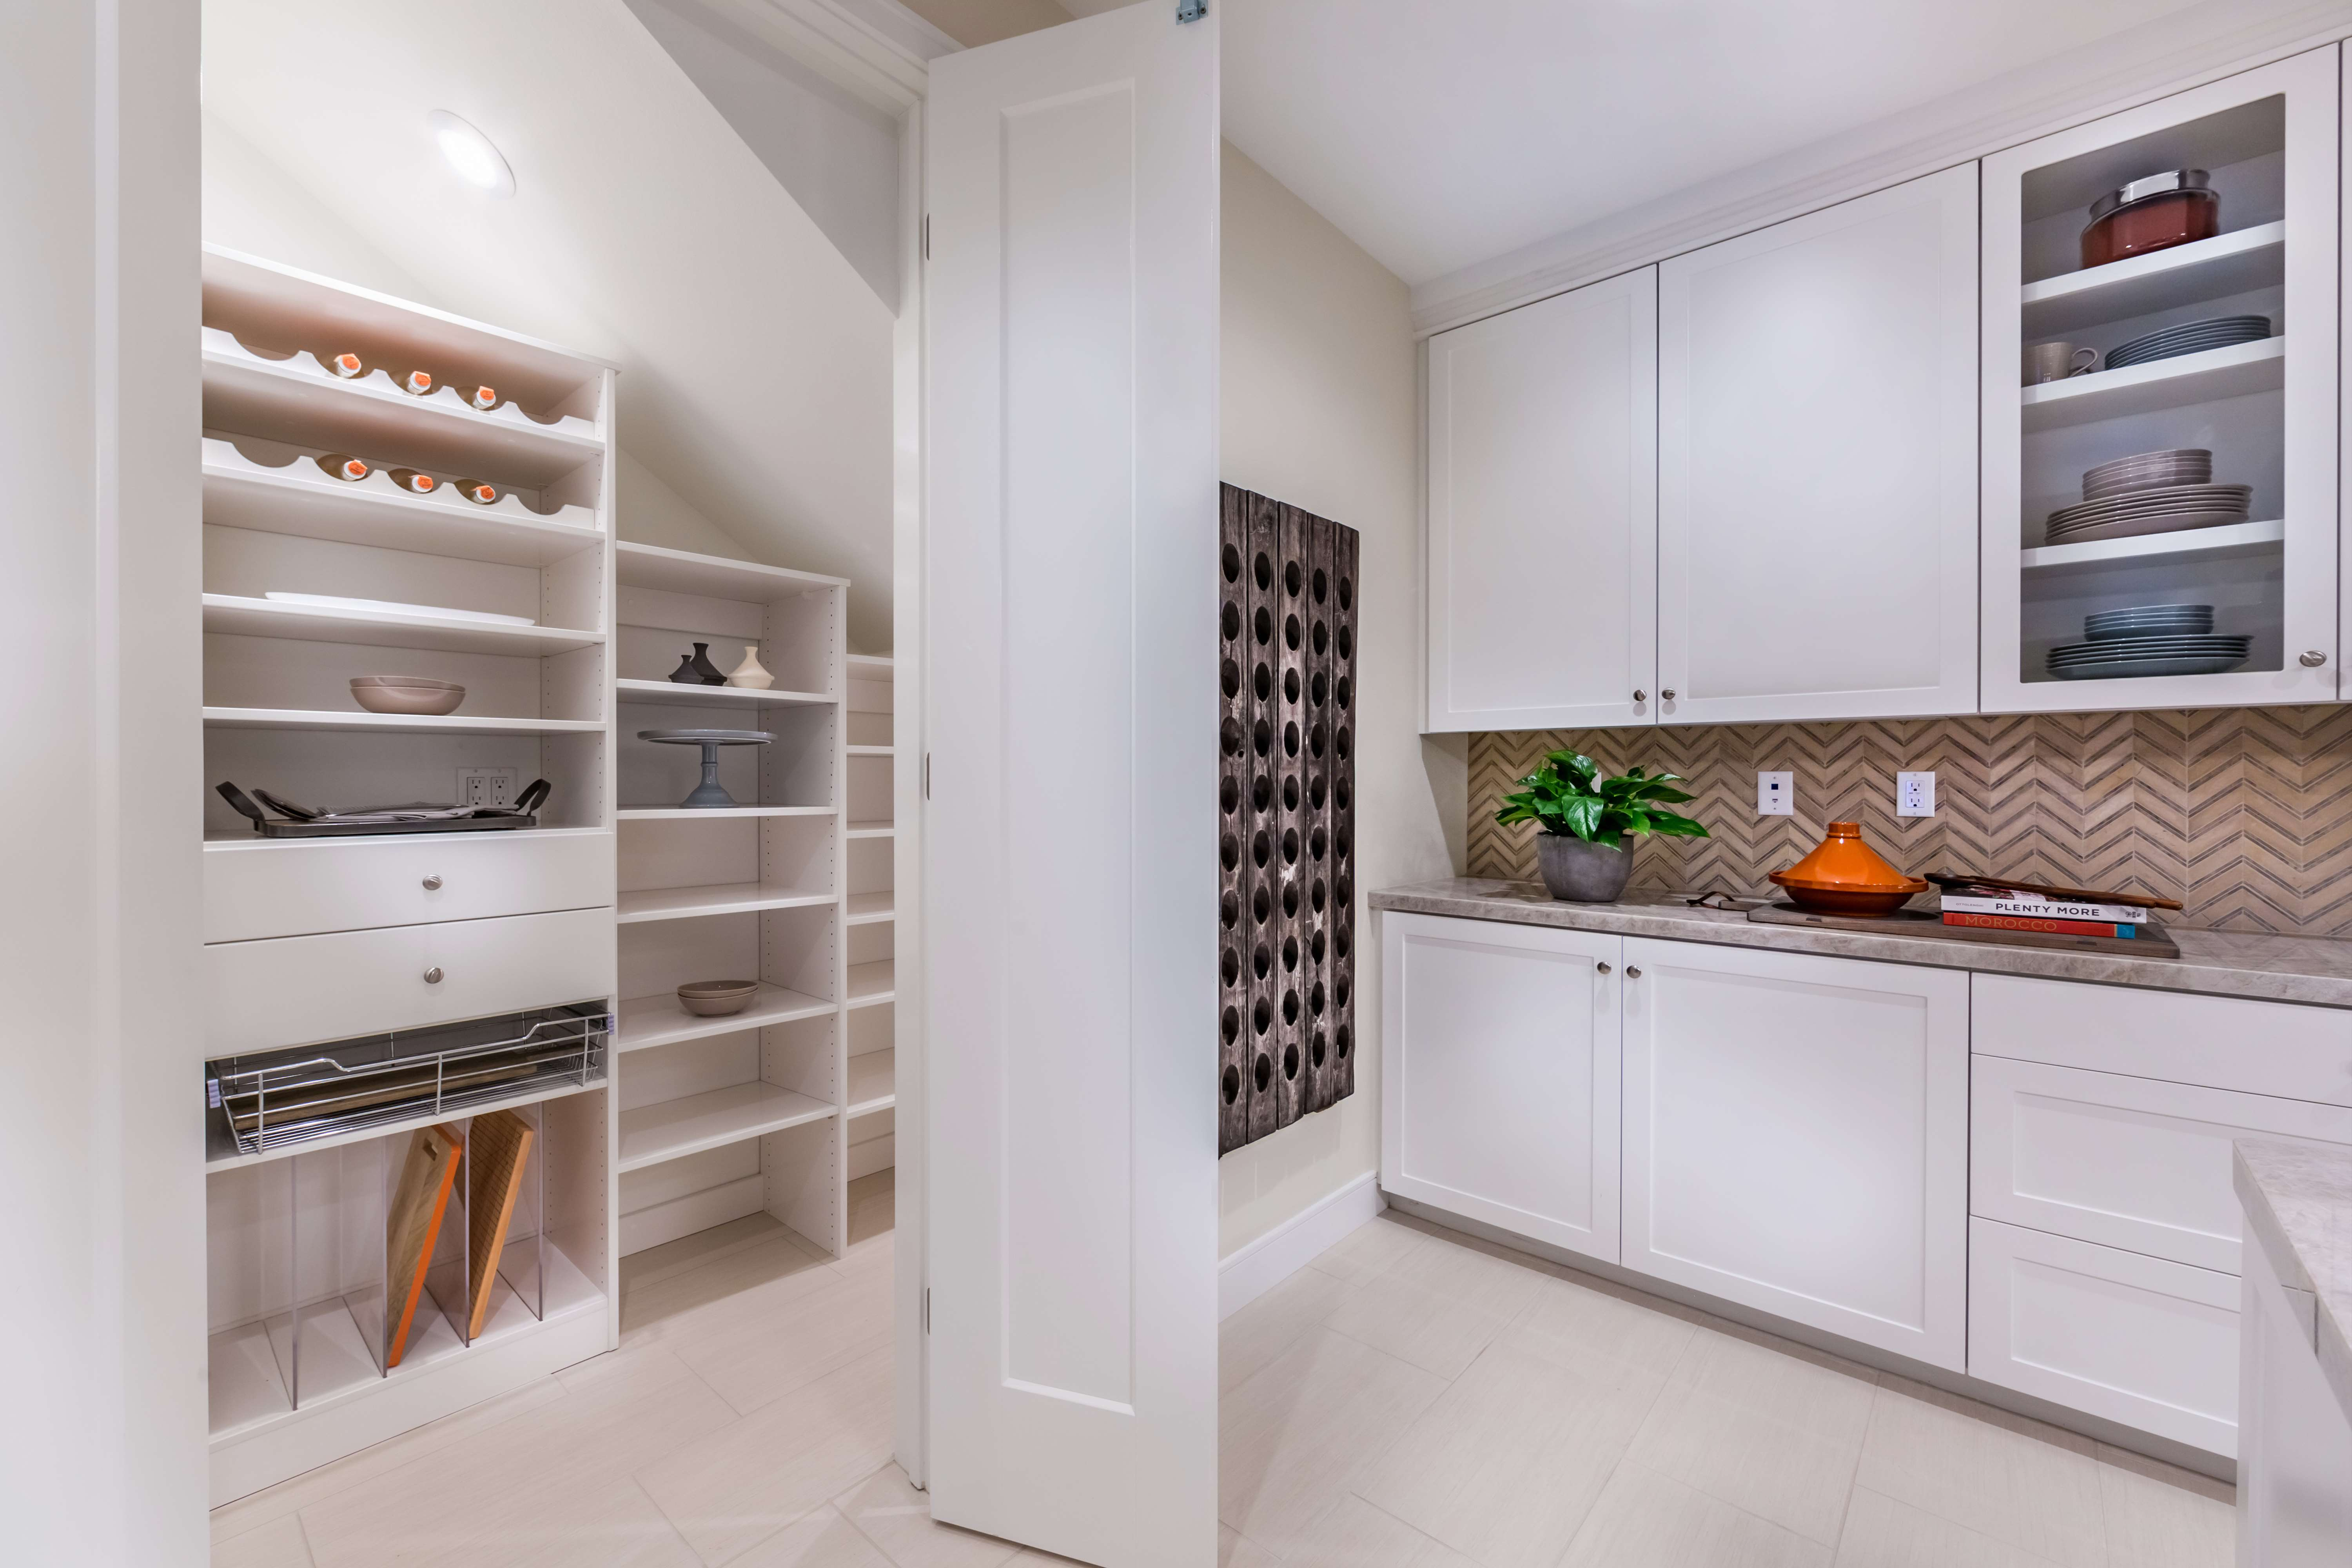 Kitchen Pantry at Lago Residence 2 in Irvine